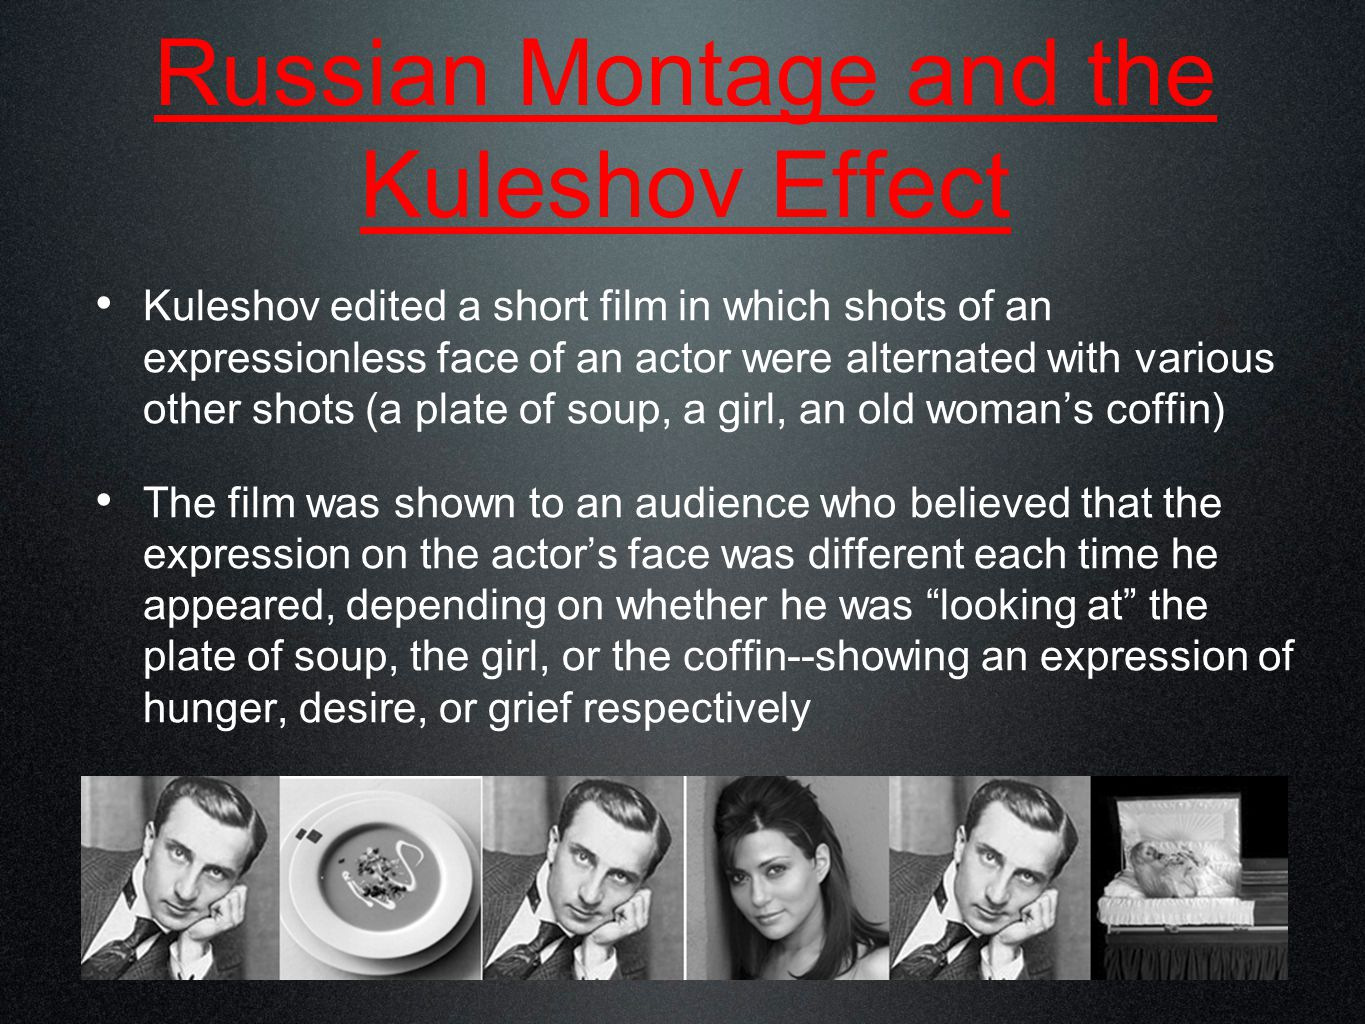 Russian Montage and the Kuleshov Effect Kuleshov edited a short film in which shots of an expressionless face of an actor were alternated with various other shots (a plate of soup, a girl, an old woman's coffin) The film was shown to an audience who believed that the expression on the actor's face was different each time he appeared, depending on whether he was looking at the plate of soup, the girl, or the coffin--showing an expression of hunger, desire, or grief respectively